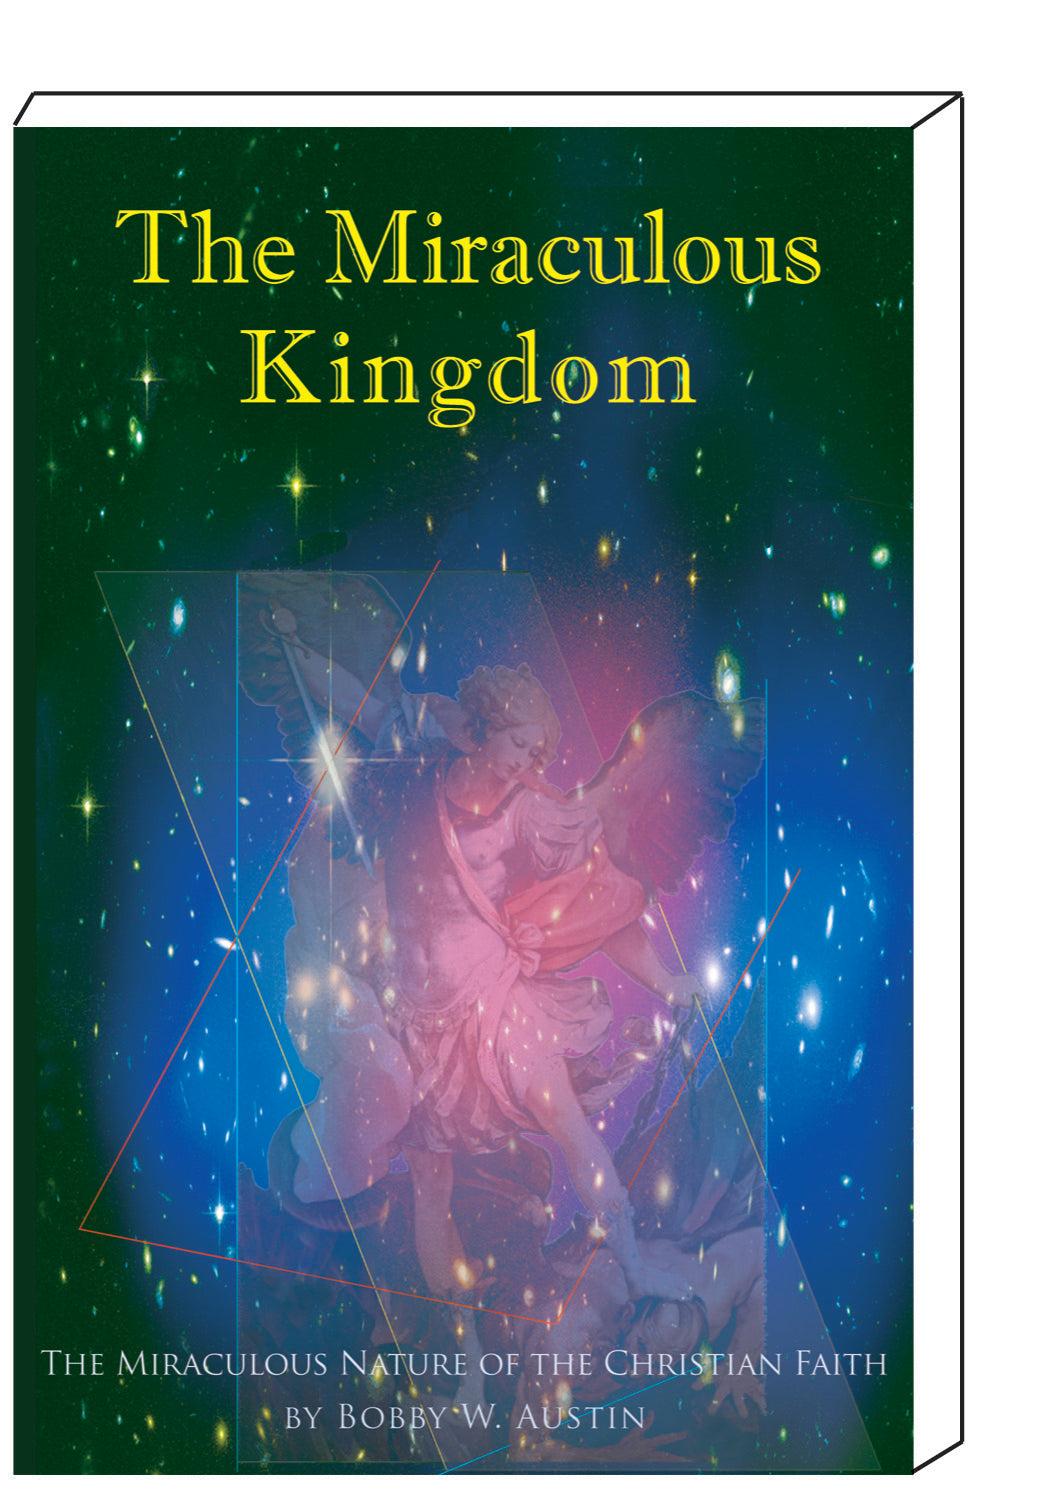 The Miraculous Kingdom by Bobby W Austin